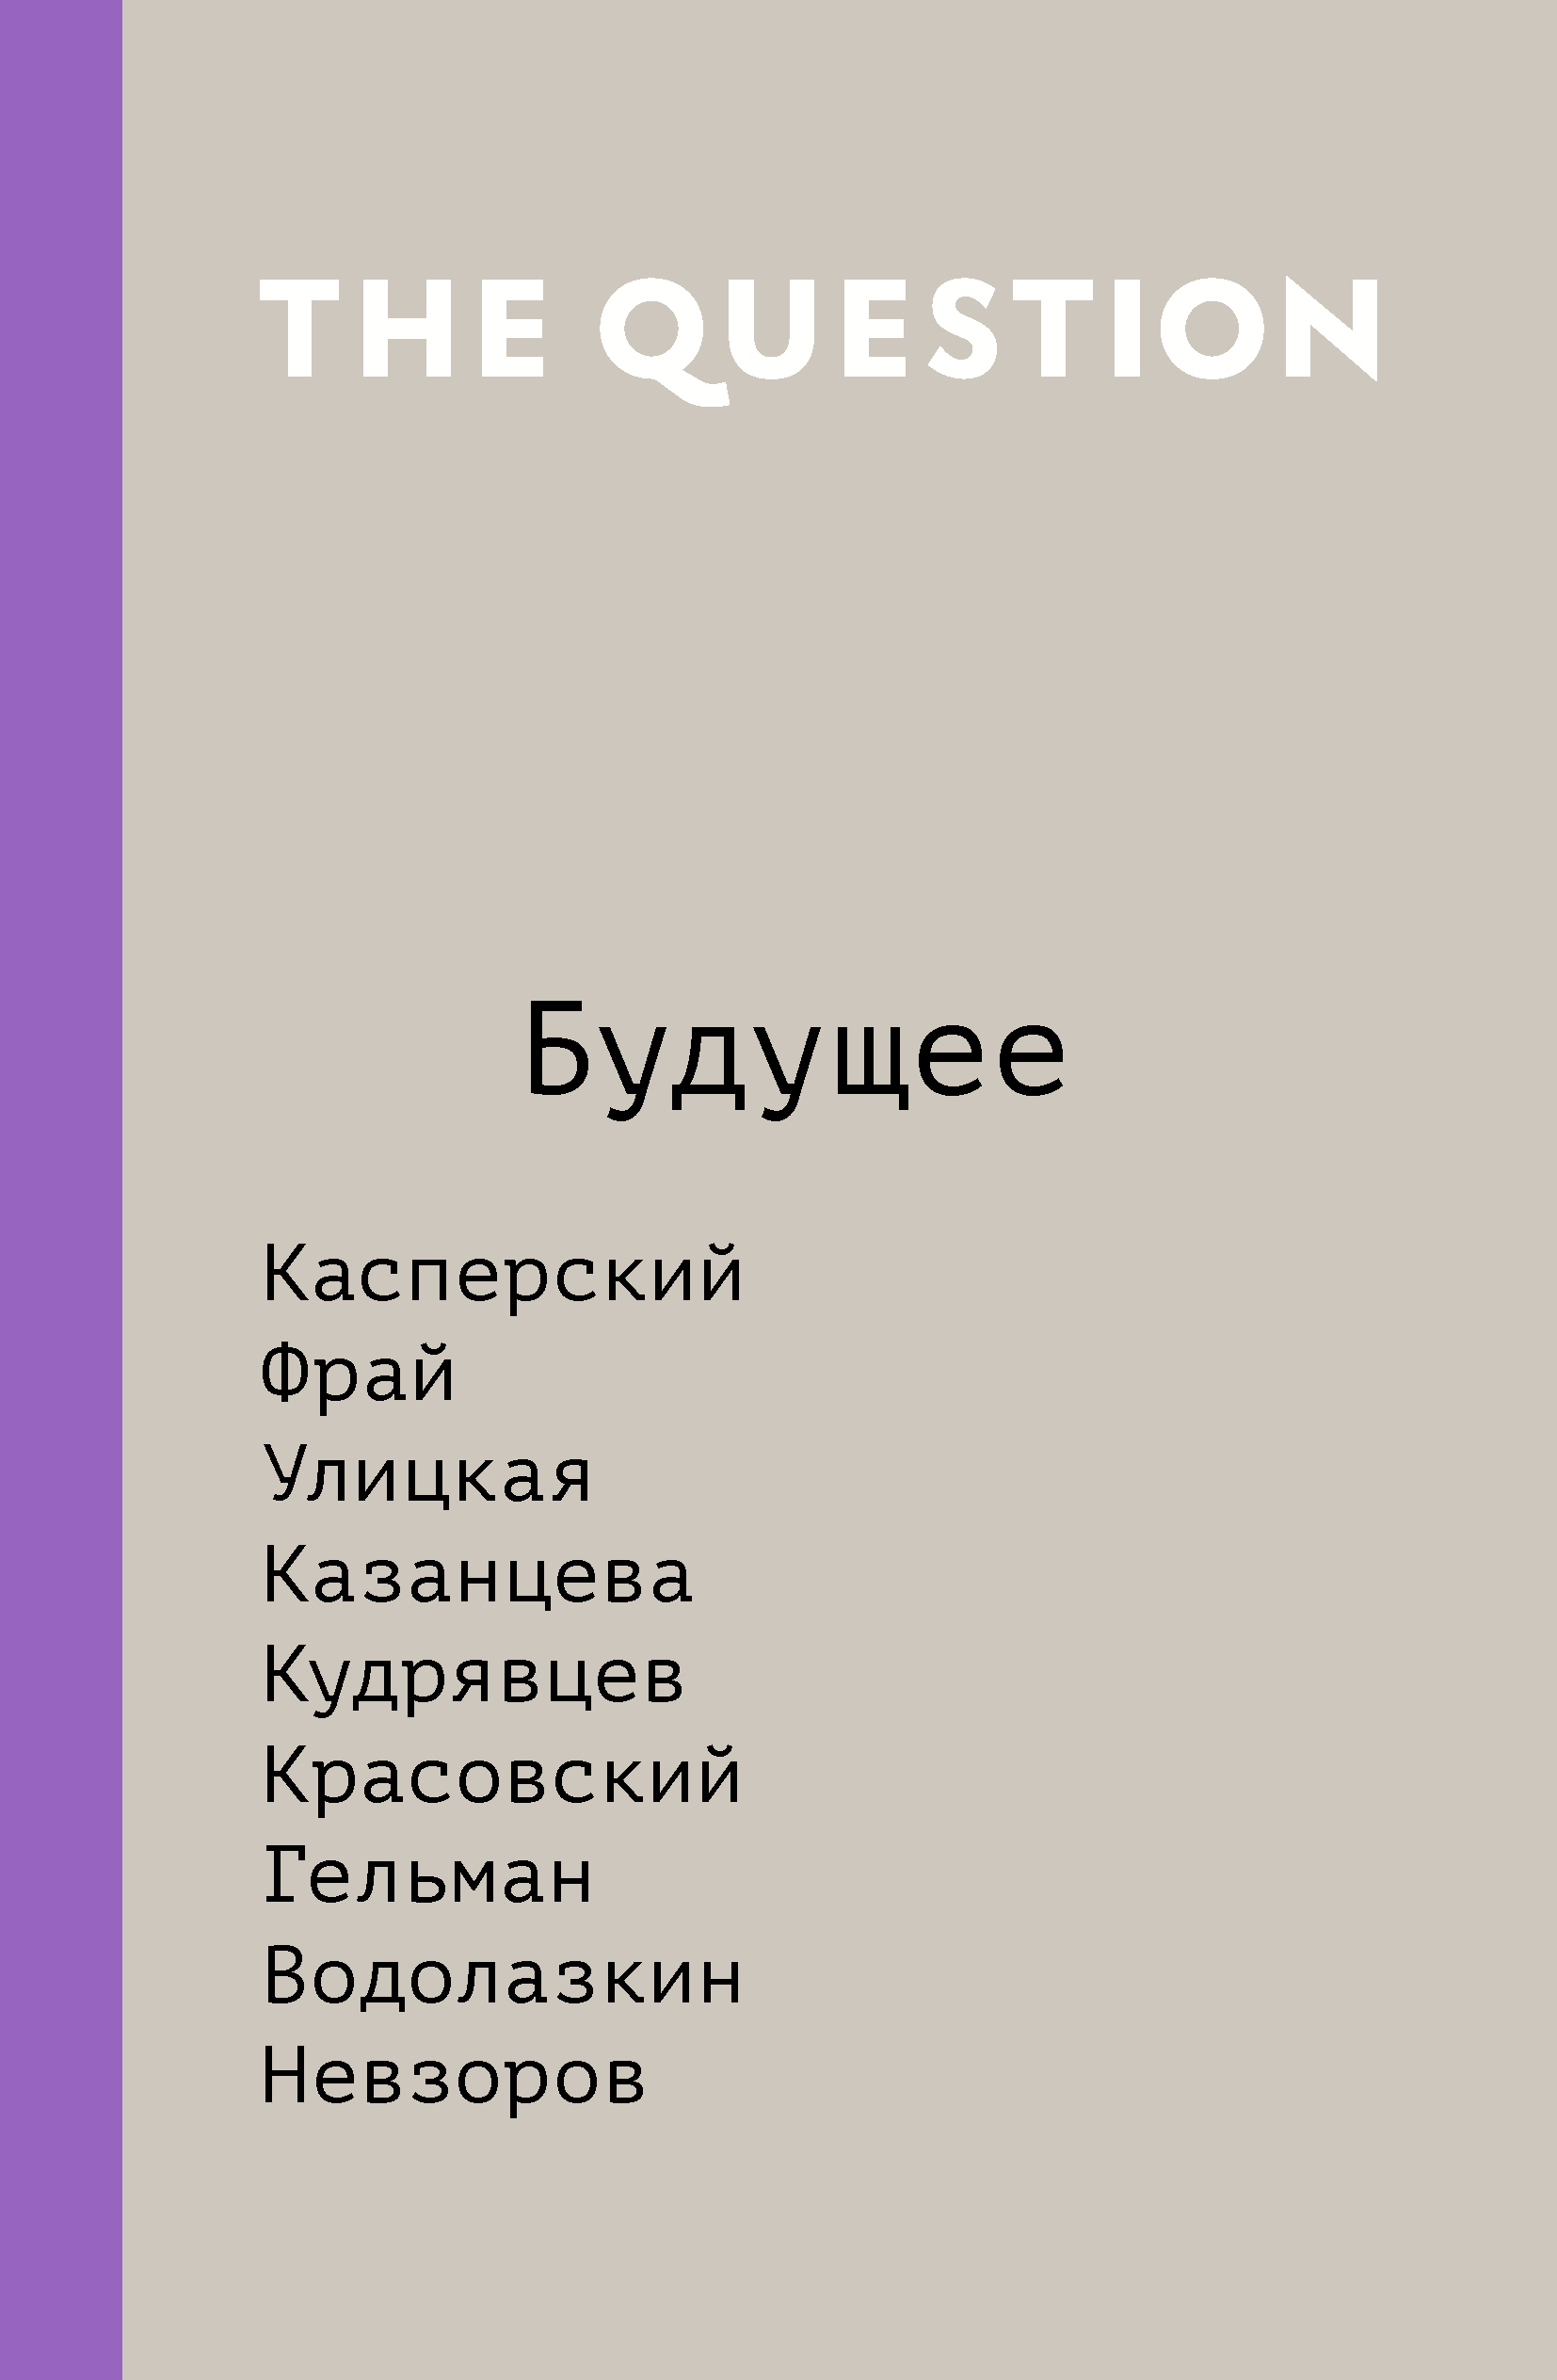 Улицкая Л.Е., Макс Фрай, Водолазова М.Л. The Question. Будущее